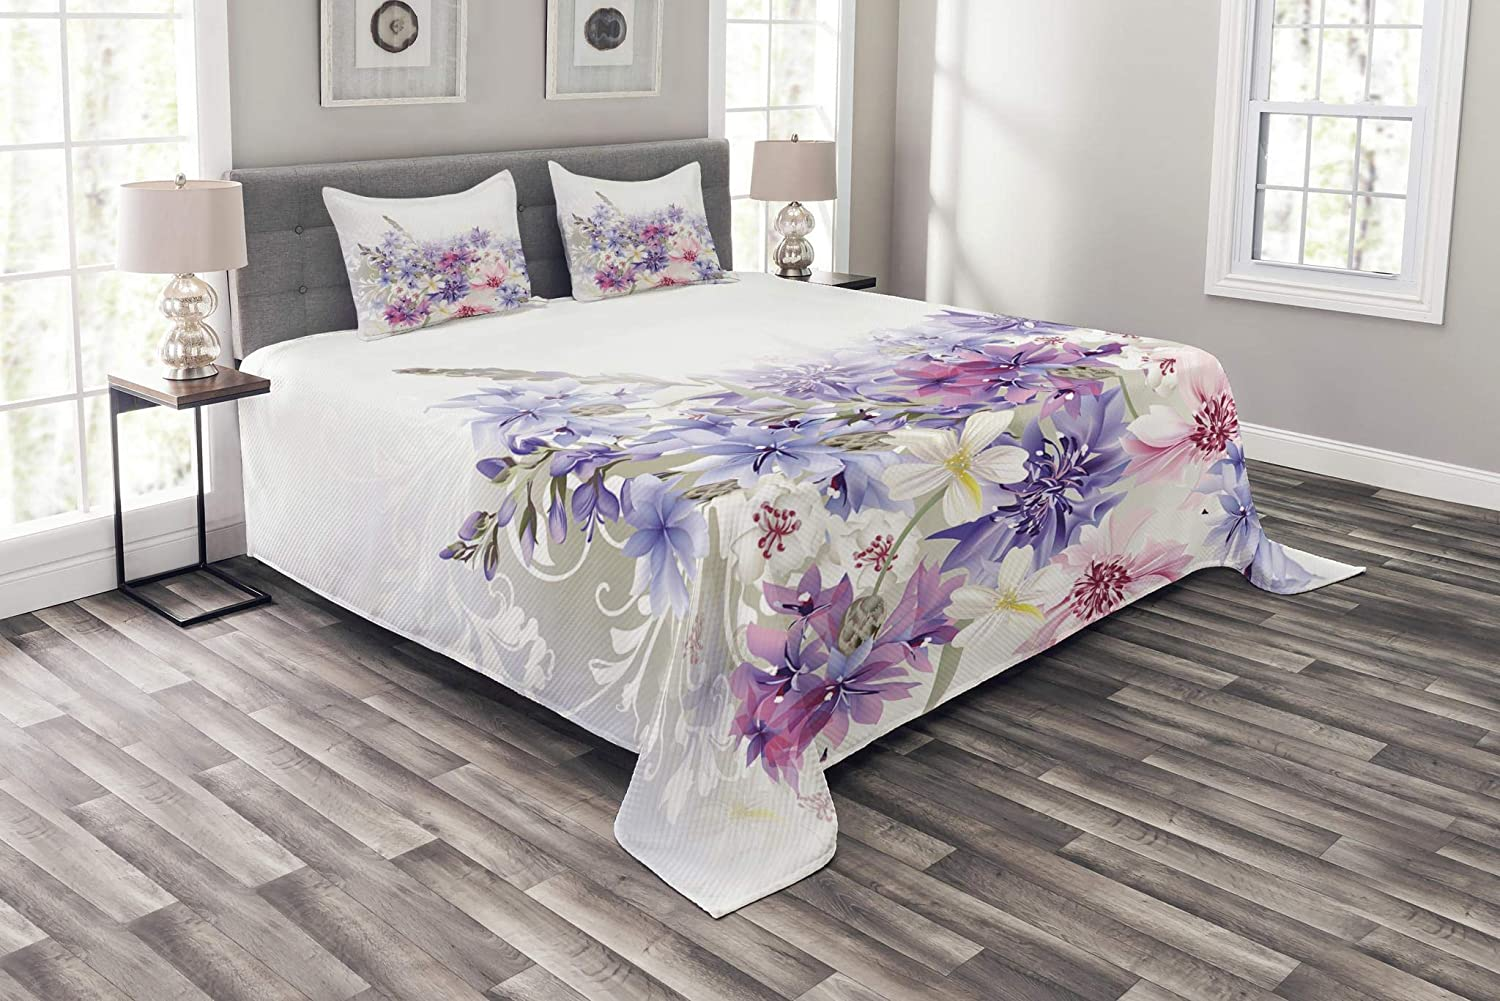 Ambesonne Lavender Bedspread Set Queen Size, Pastel Cornflowers Bridal Classic Design Gentle Floral Wedding Design Print, 3 Piece Decorative Quilted Coverlet with 2 Pillow Shams, purple Pink